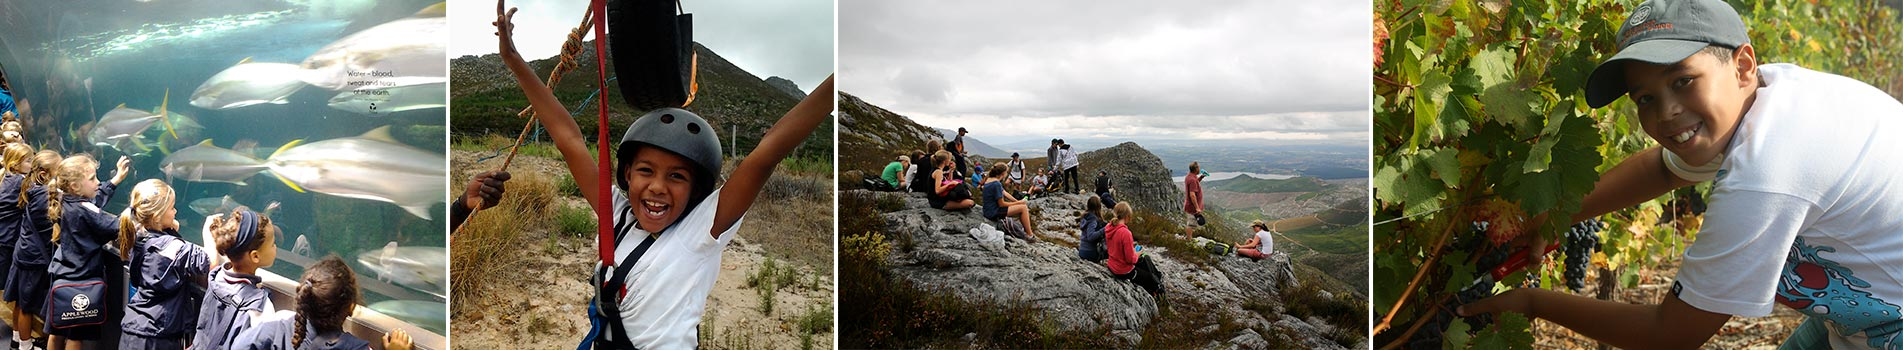 Outdoor Education South Africa